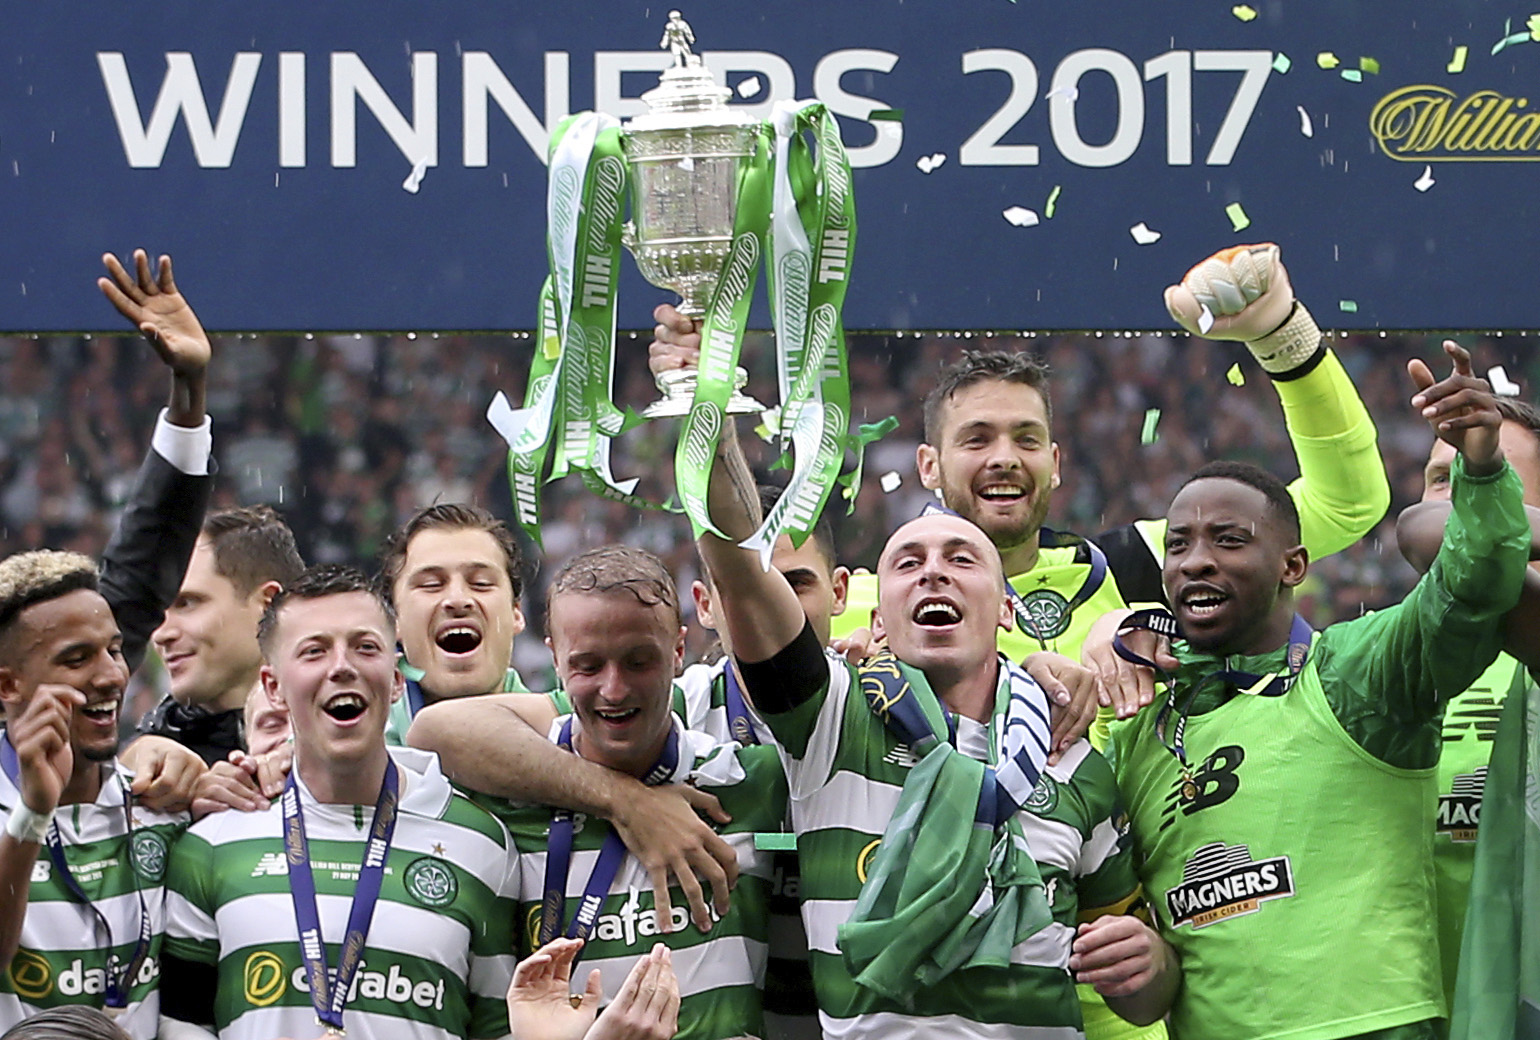 Celtic's players celebrate after winning the Scottish Cup final against Aberdeen at Hampden Park, Glasgow, Scotland on Saturday.